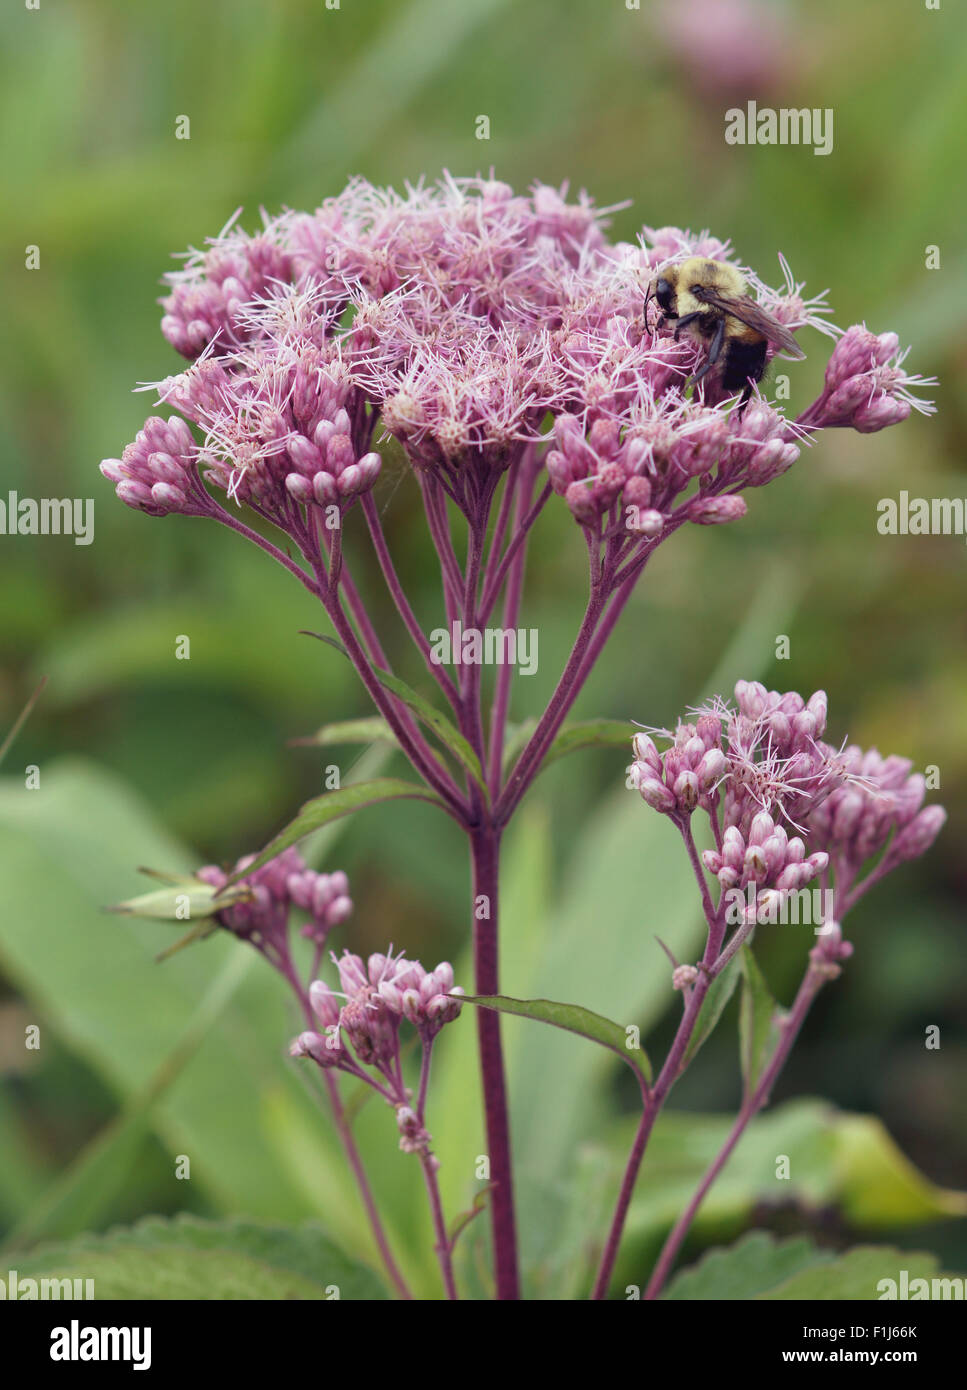 Spotted Joe-pye-weed (Eupatorium maculatum) flower being pollinated by a wild bumblebee. - Stock Image